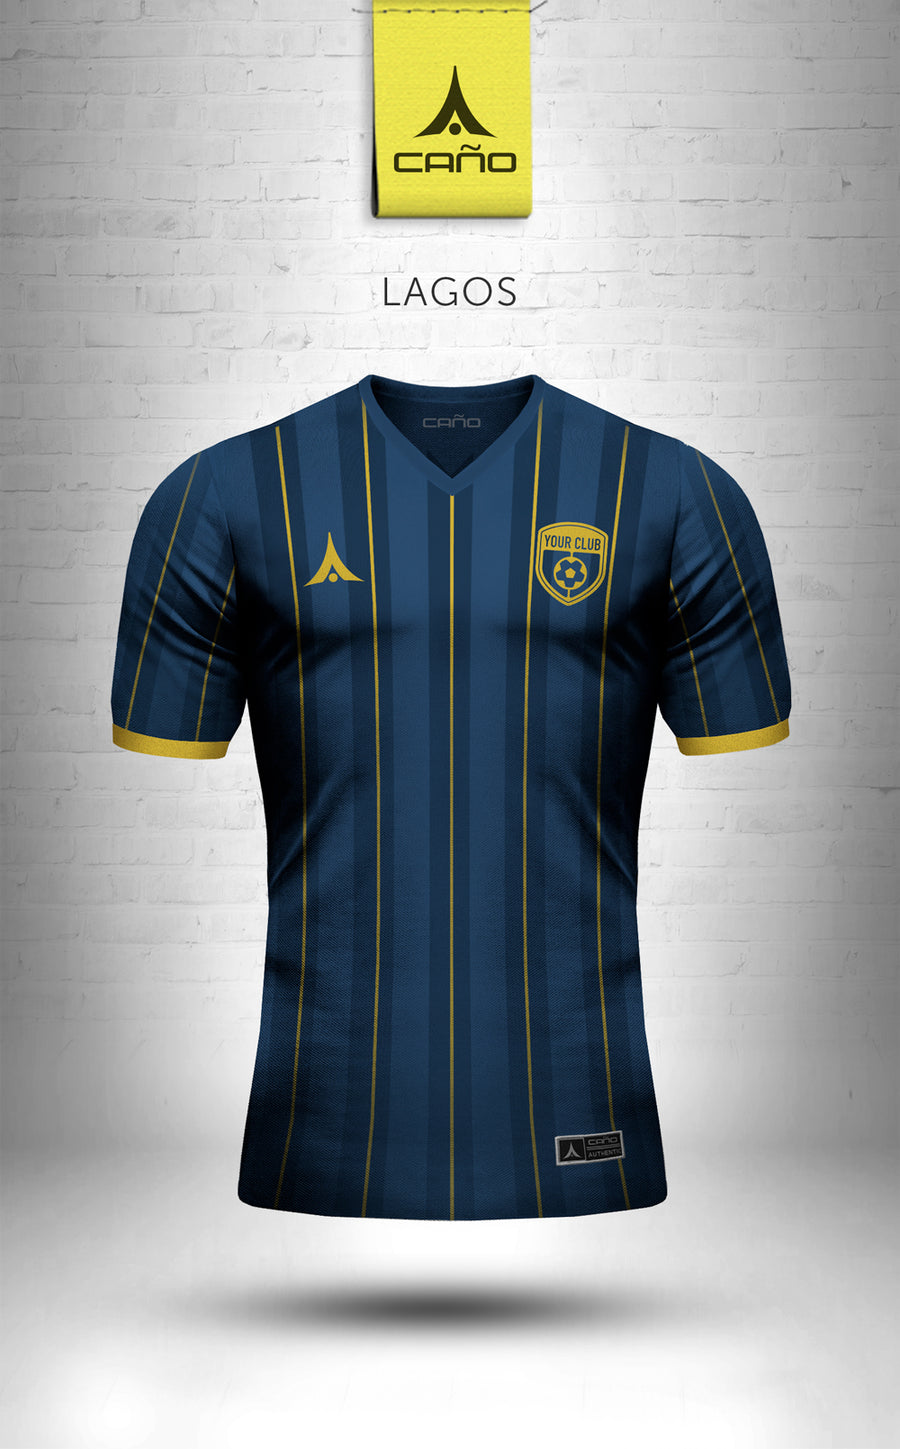 Lagos in navy/gold